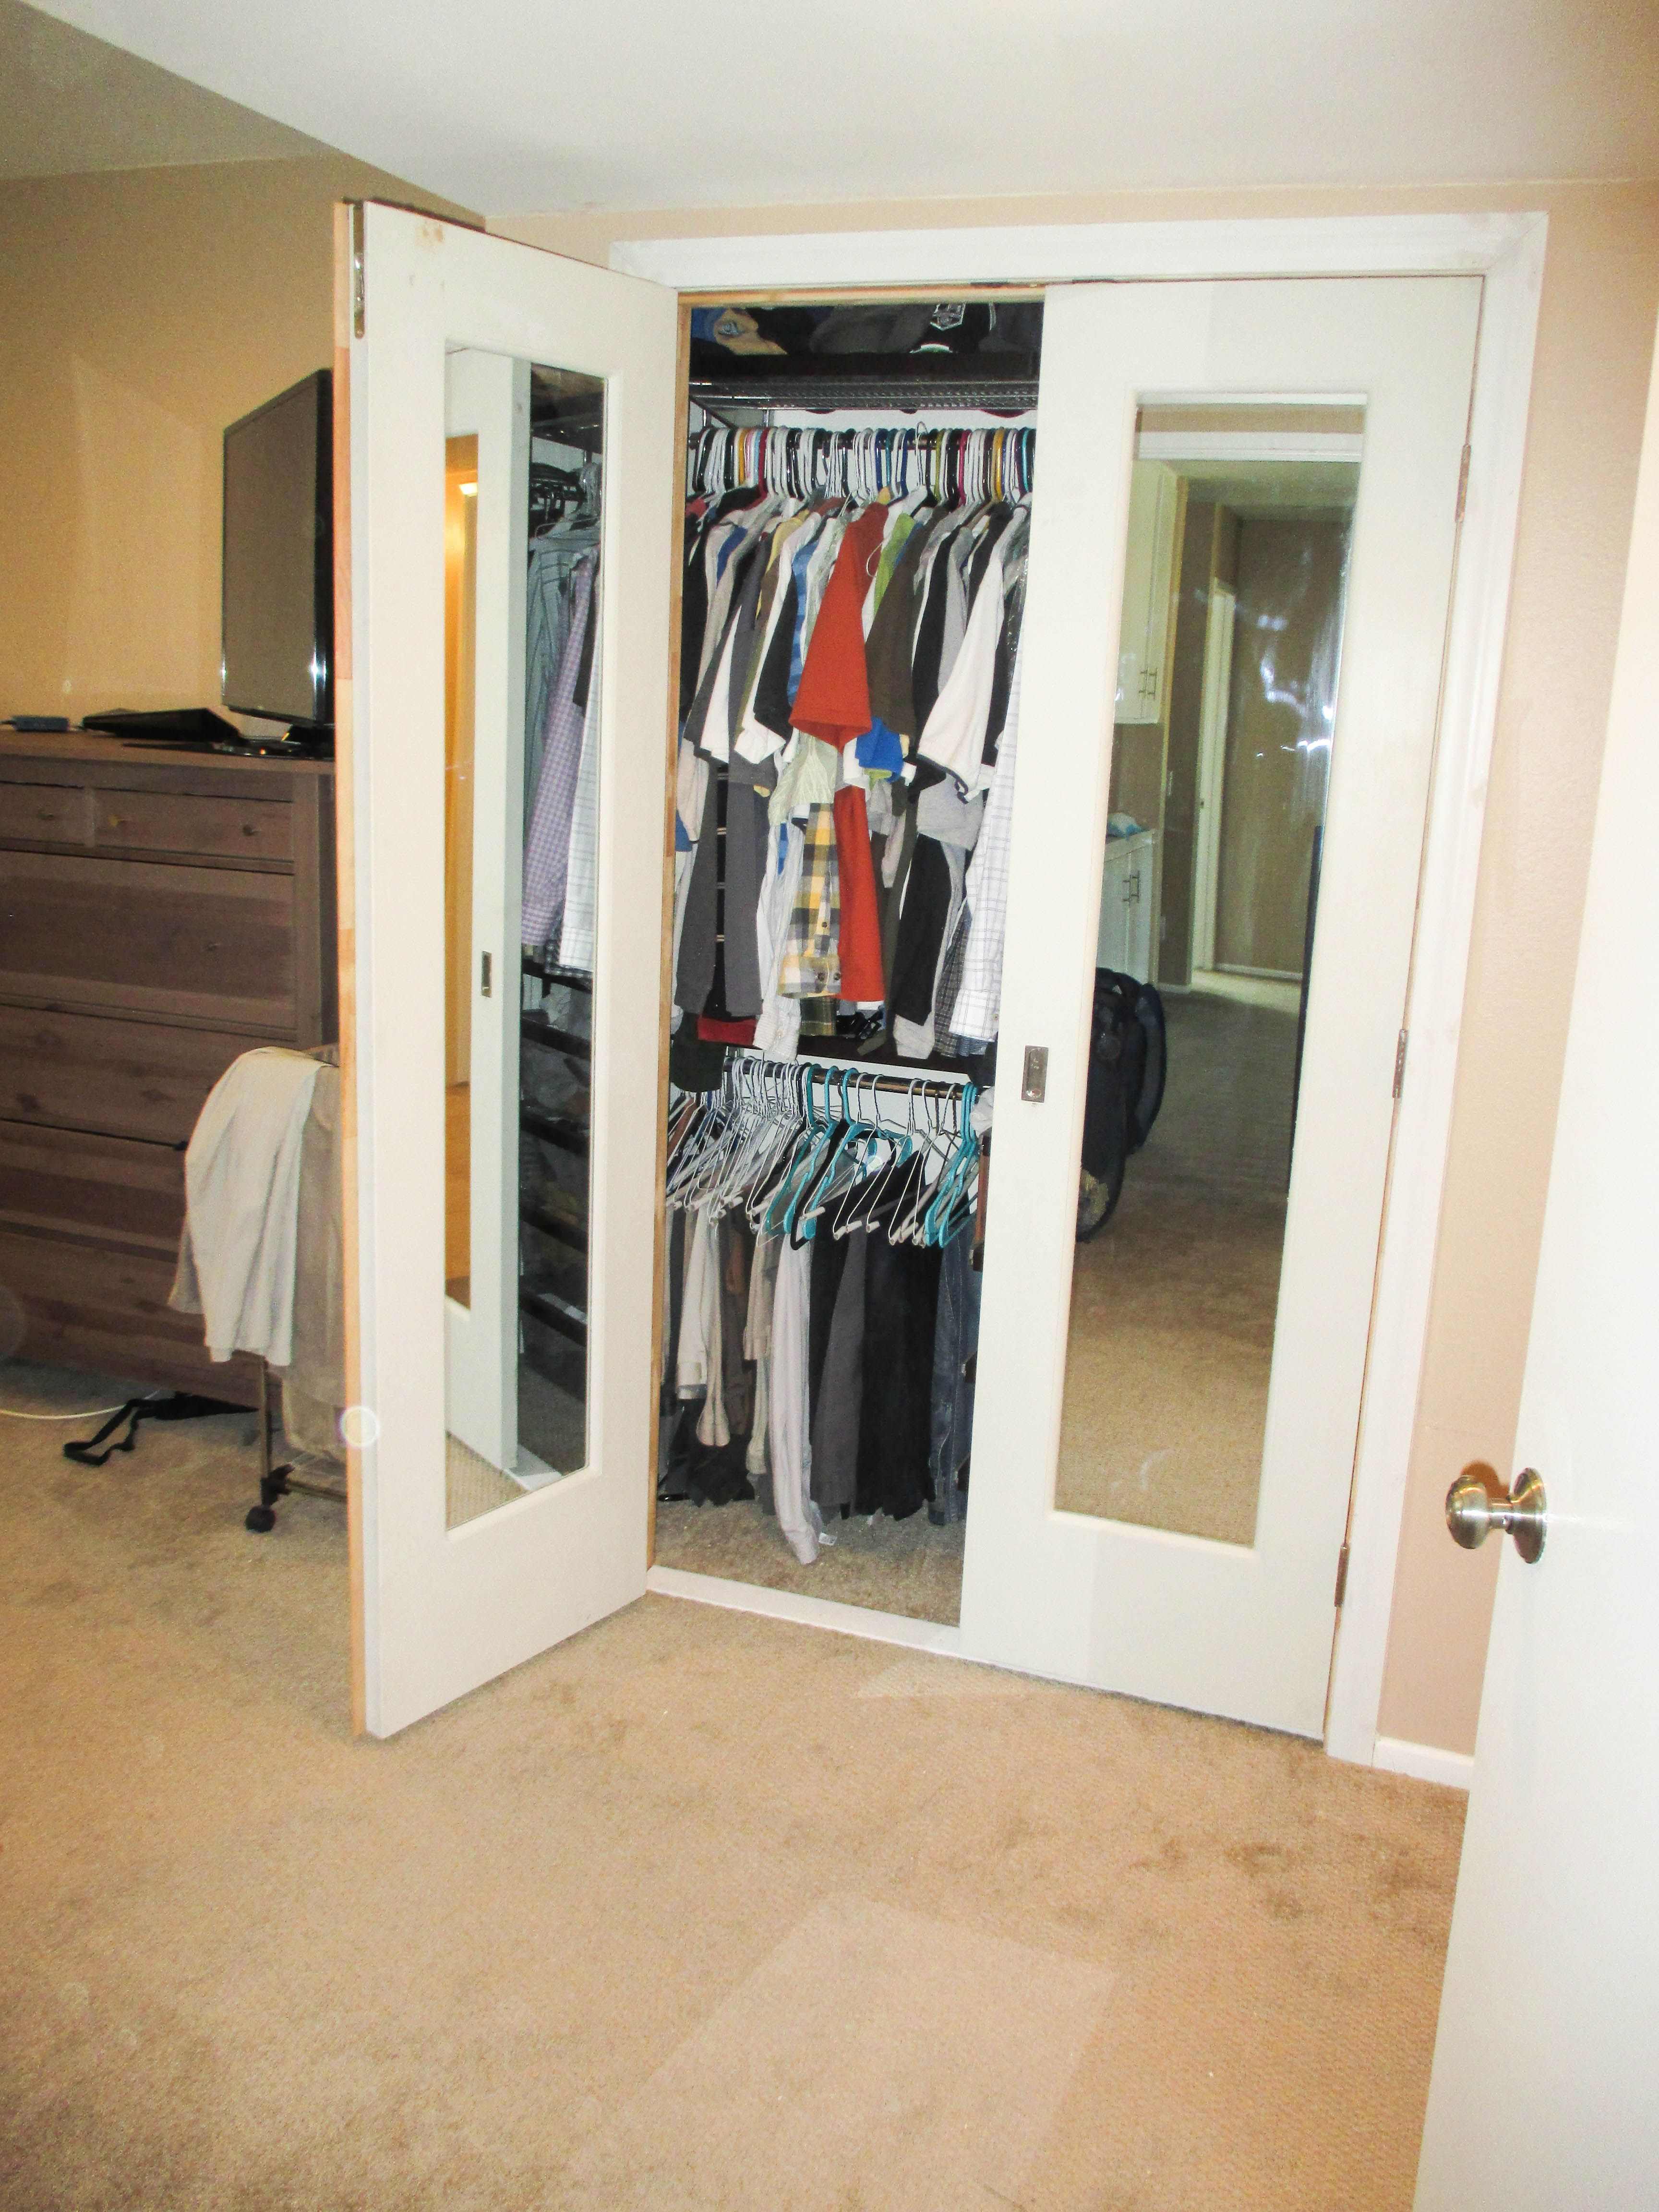 Delightful Have You Been Procrastinating Installing New Closet Doors? Check Out This  Interior, Swinging, Double Door Closet Door System That Our Team Recently  ...